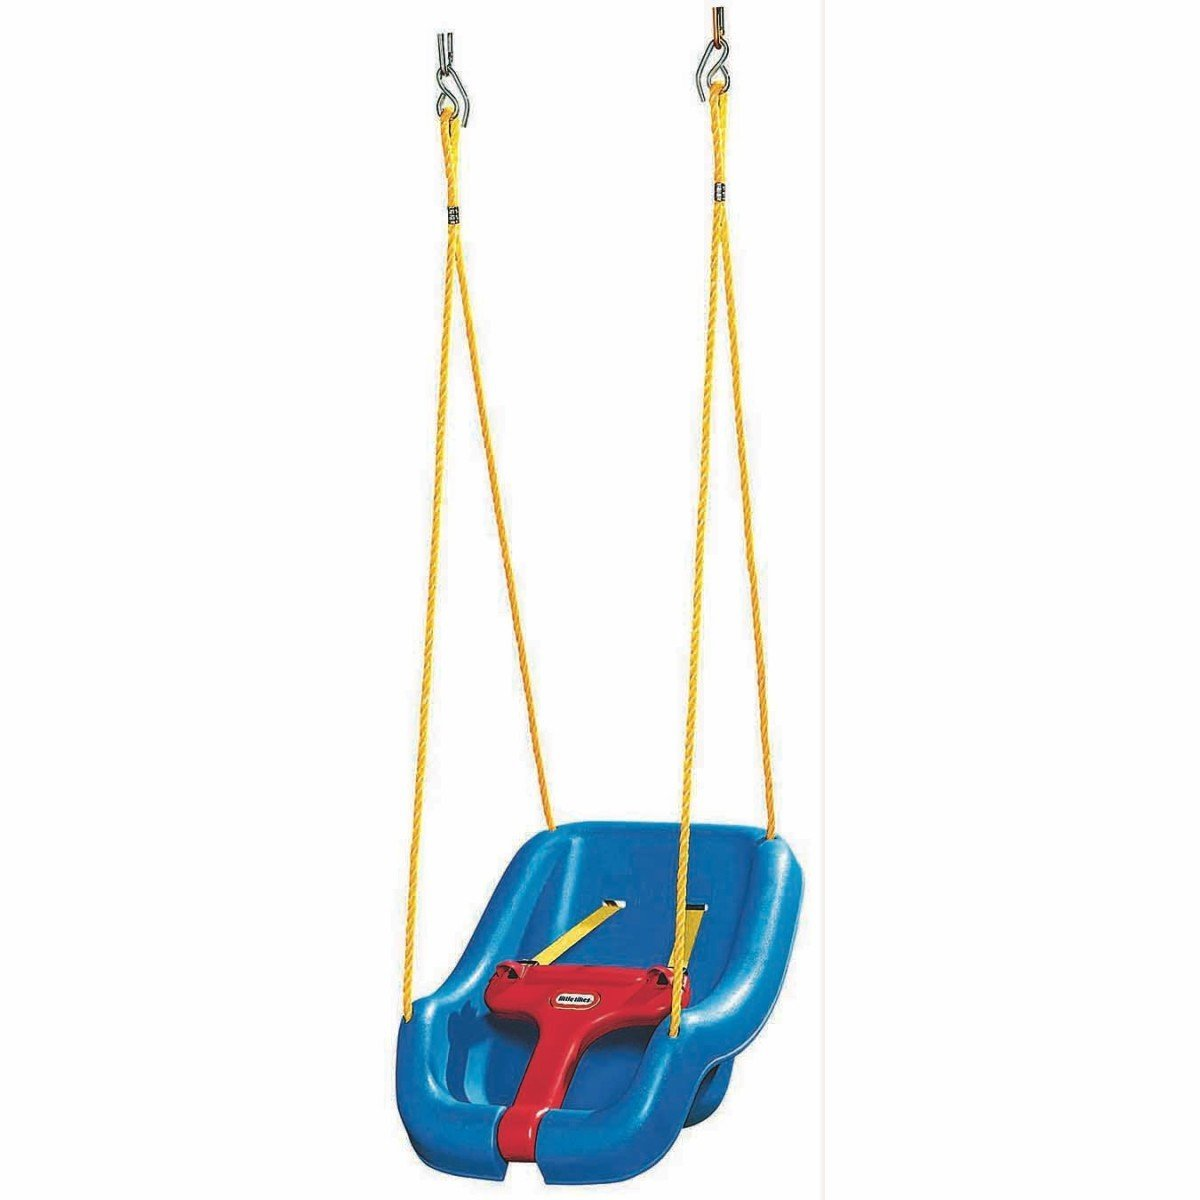 2-in-1 Snug N Secure Swing, Multi Color, Perfectly safe toddler swing that has the size and durability of a... by Little Tikes